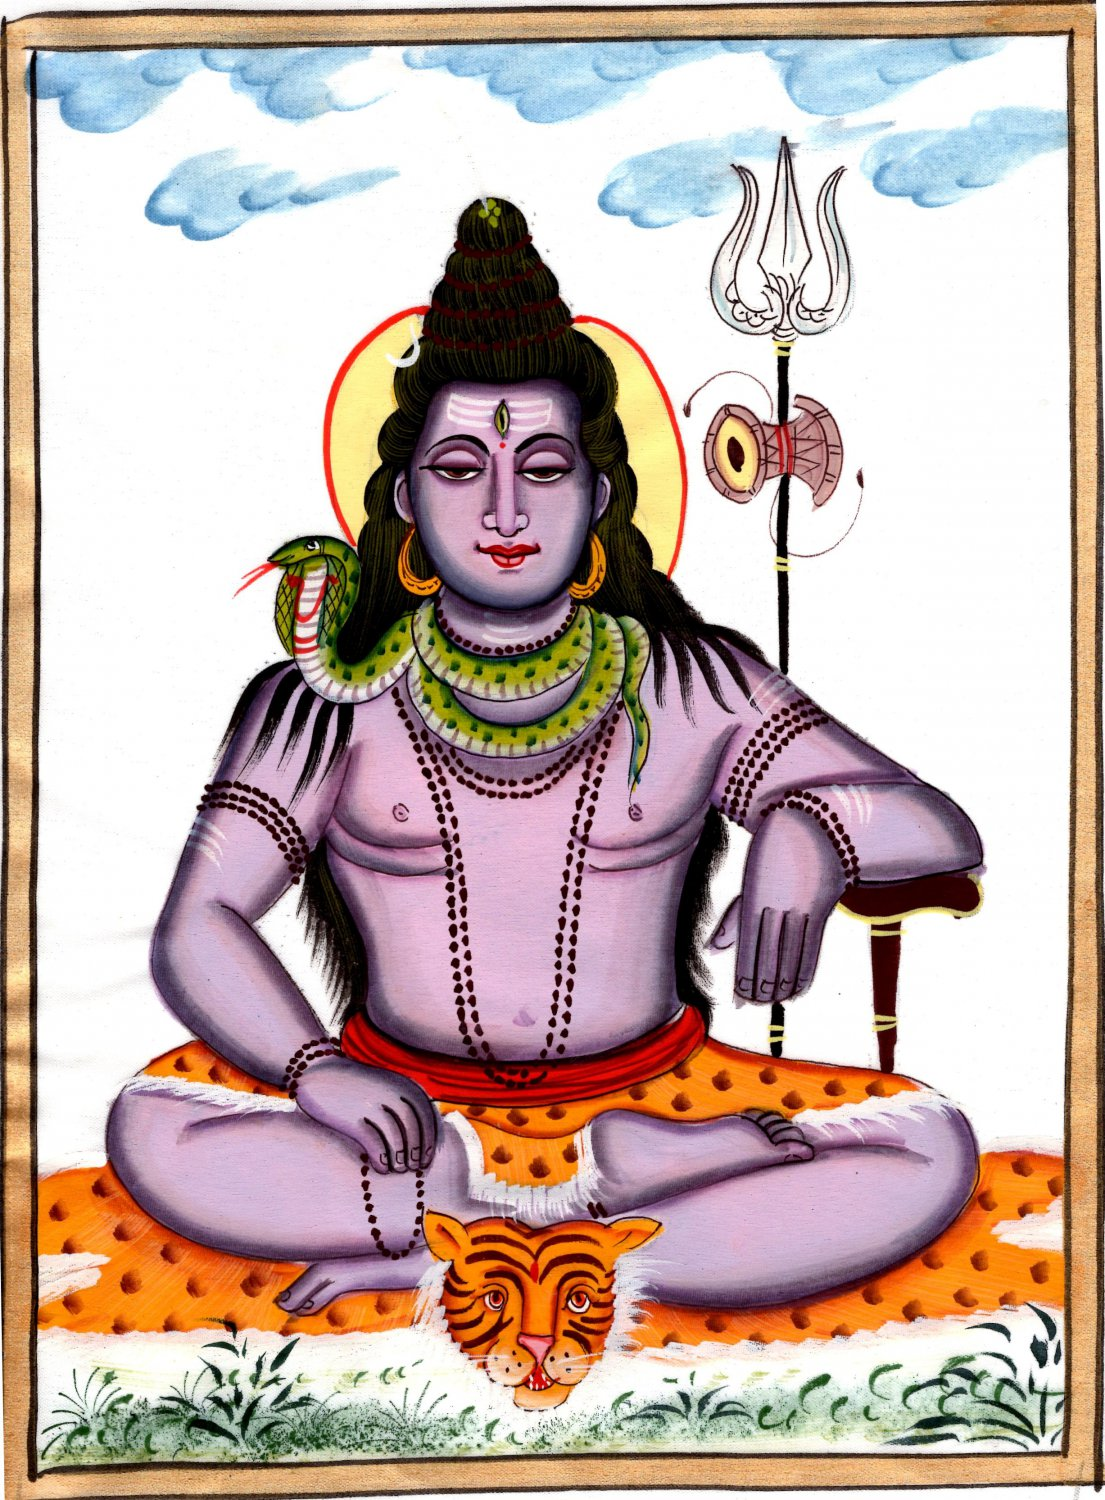 Lord Mahadev Shiva Art Handmade Opaque Watercolor Hindu Spiritual Silk Painting